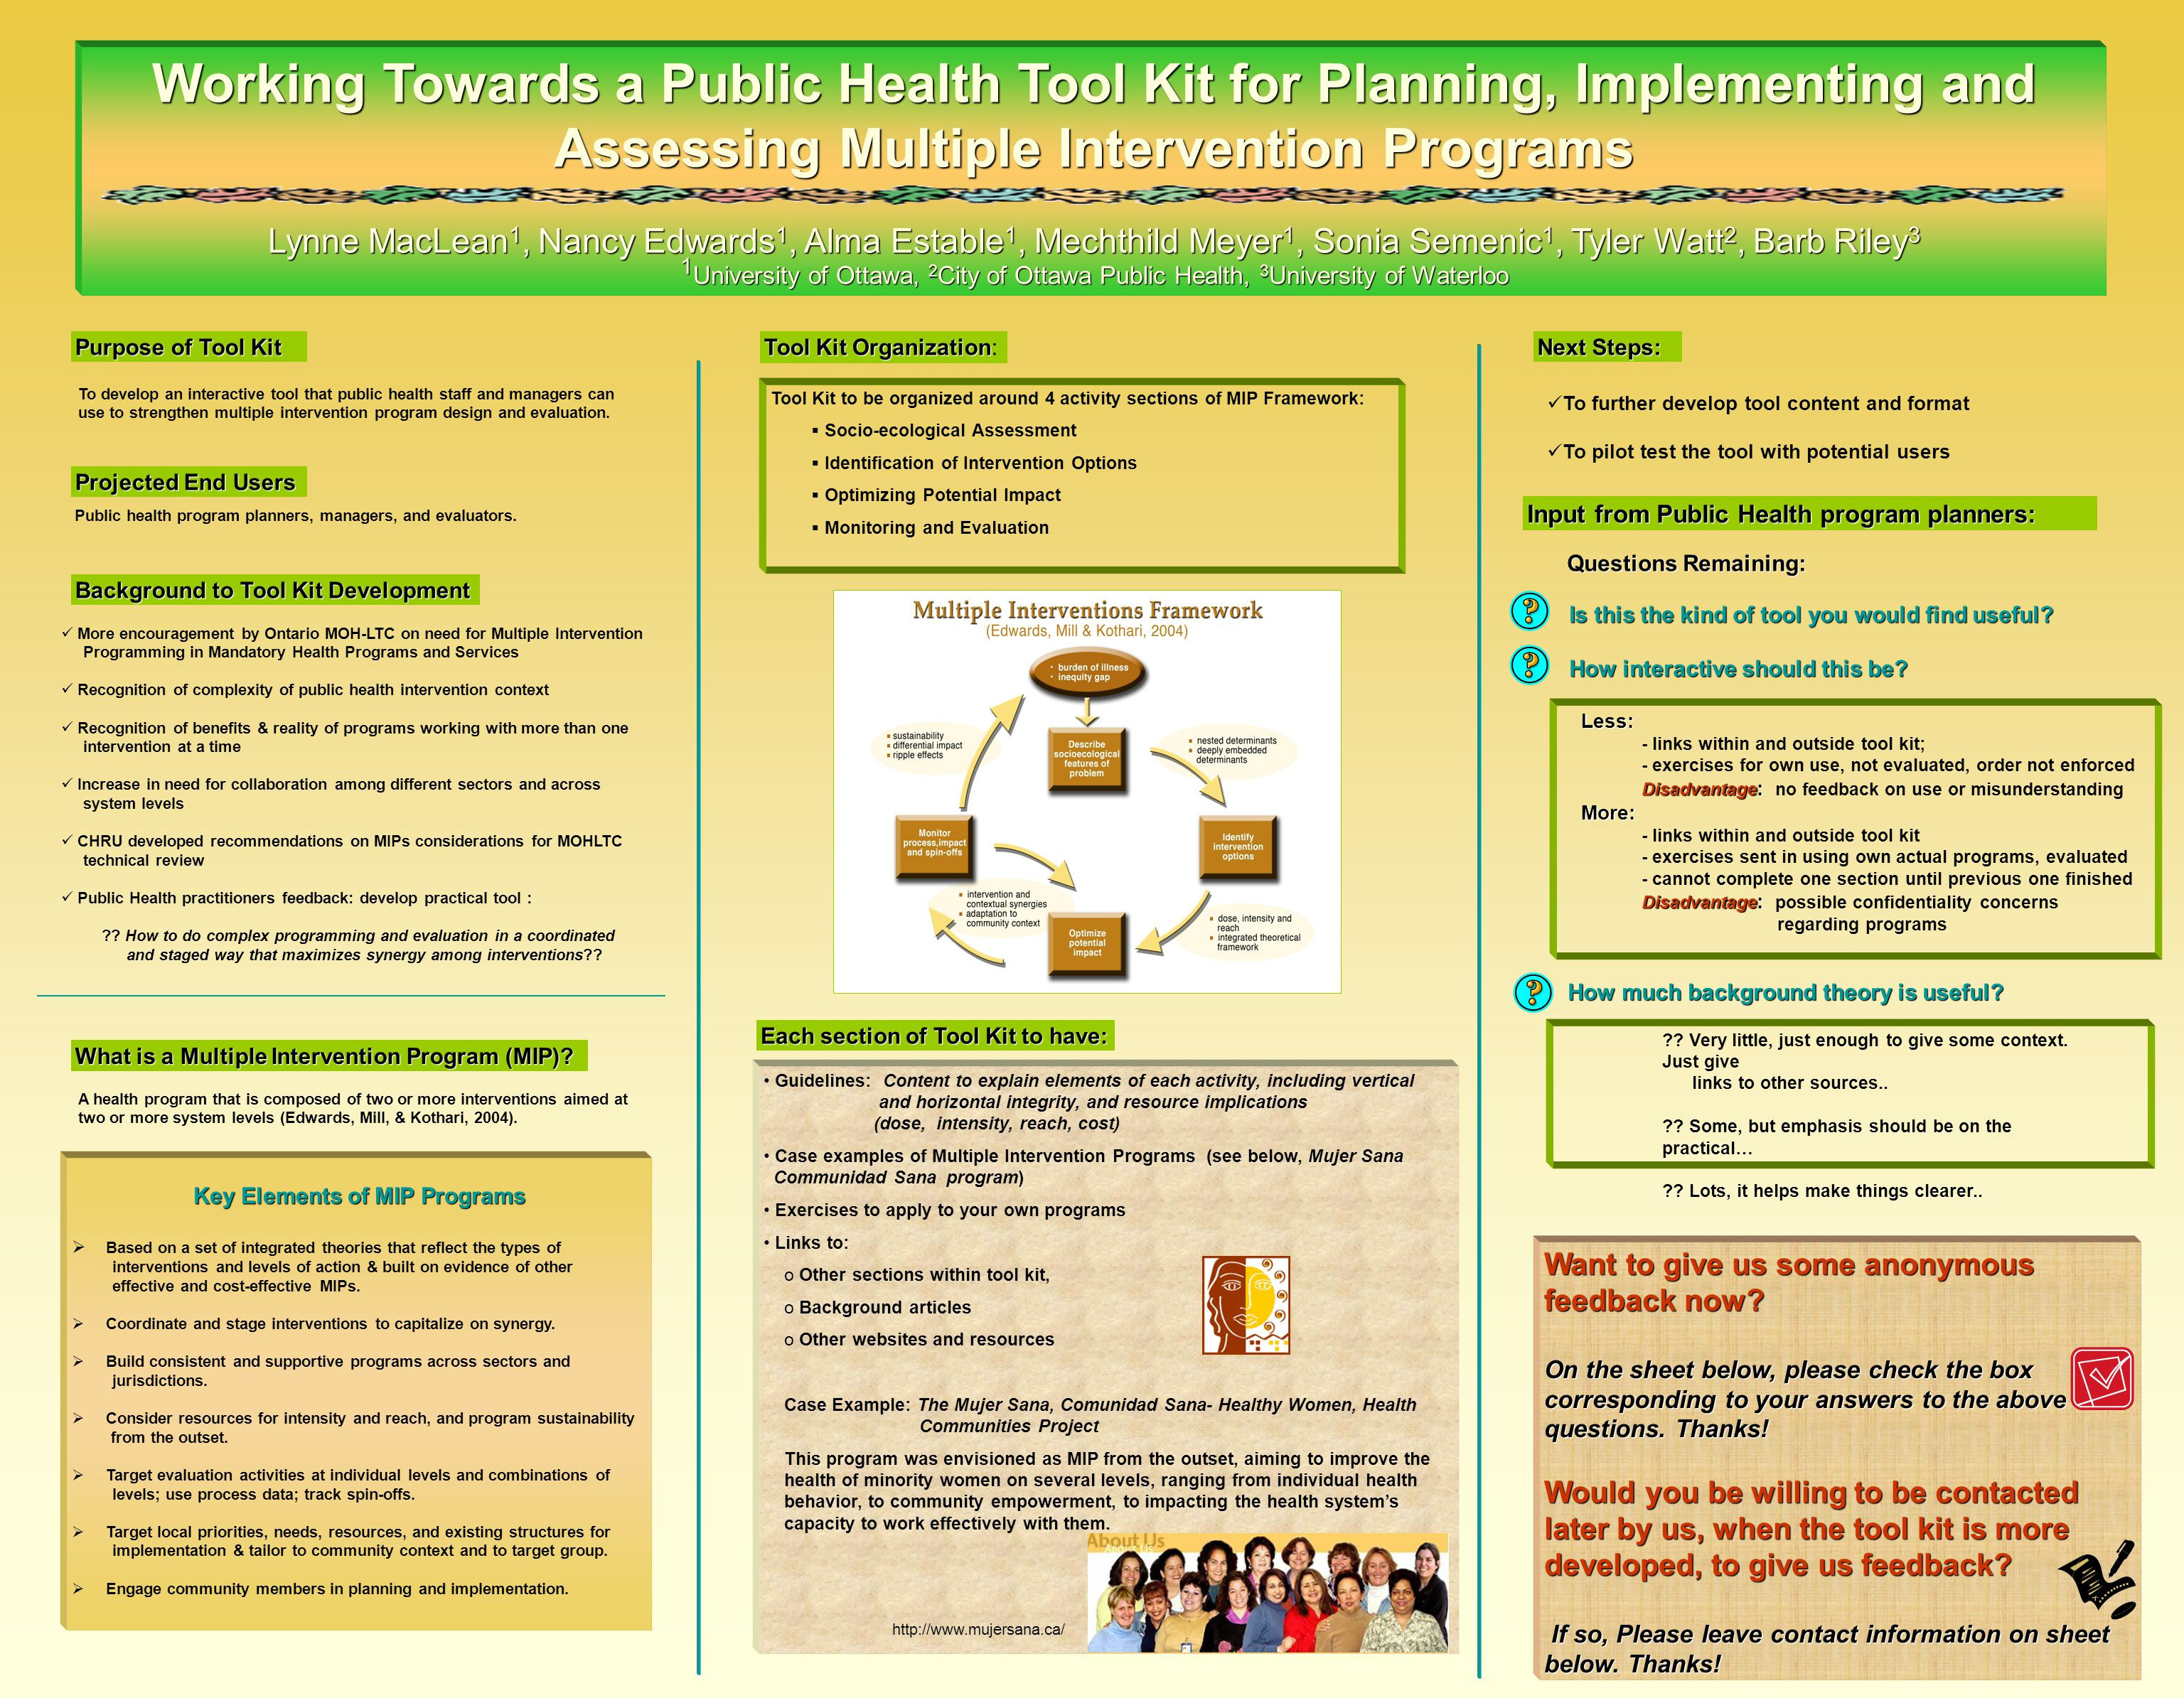 Working Towards a Public Health Tool Kit for Planning, Implementing and Assessing Multiple Intervention Programs Lynne MacLean 1, Nancy Edwards 1, Alma Estable 1, Mechthild Meyer 1, Sonia Semenic 1, Tyler Watt 2, Barb Riley 3 1 University of Ottawa, 2 City of Ottawa Public Health, 3 University of Waterloo Key Elements of MIP Programs  Based on a set of integrated theories that reflect the types of interventions and levels of action & built on evidence of other effective and cost-effective MIPs.